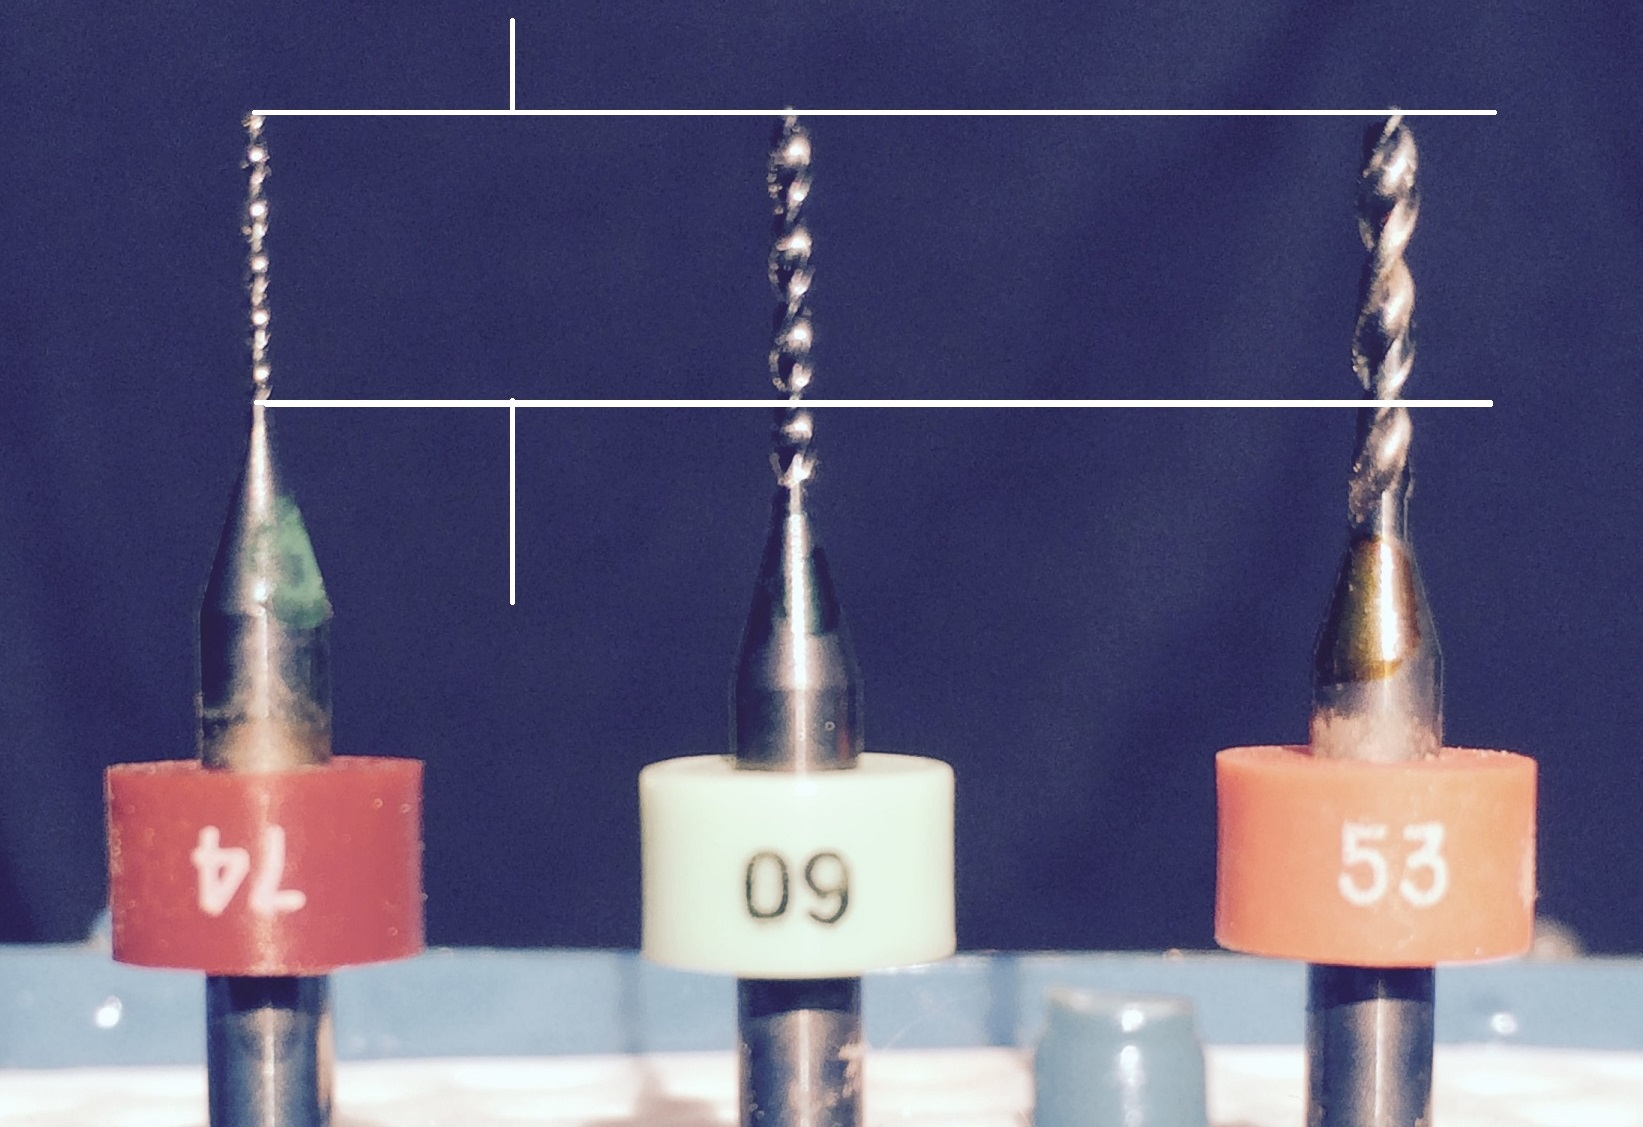 Example of shorter drill sizes used in manufacturing